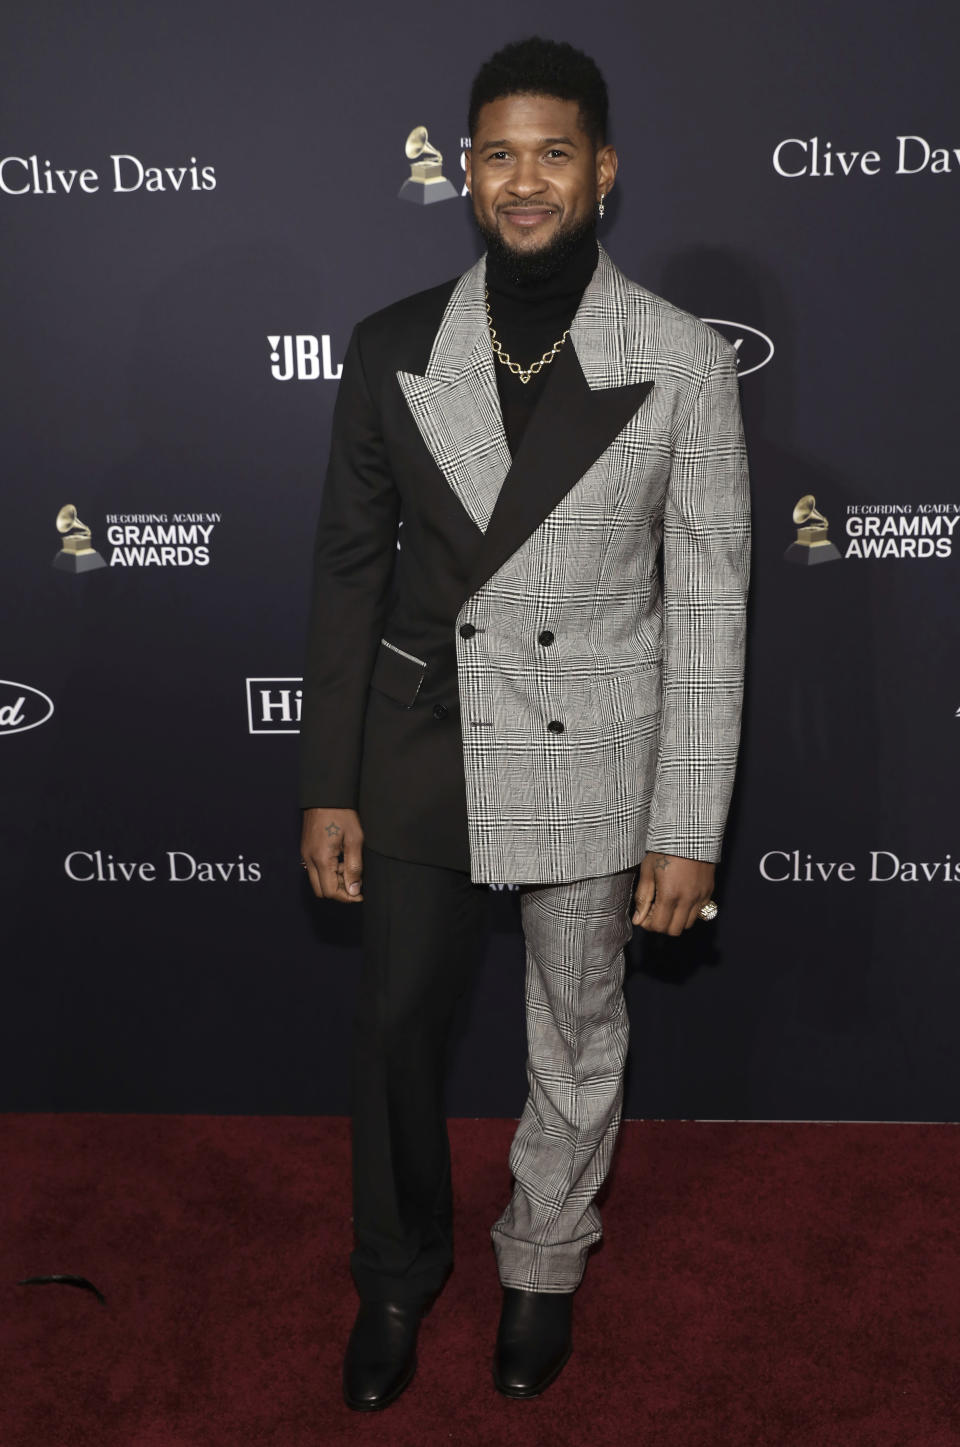 Usher arrives at the Pre-Grammy Gala And Salute To Industry Icons at the Beverly Hilton Hotel on Saturday, Jan. 25, 2020, in Beverly Hills, Calif. (Photo by Mark Von Holden/Invision/AP)